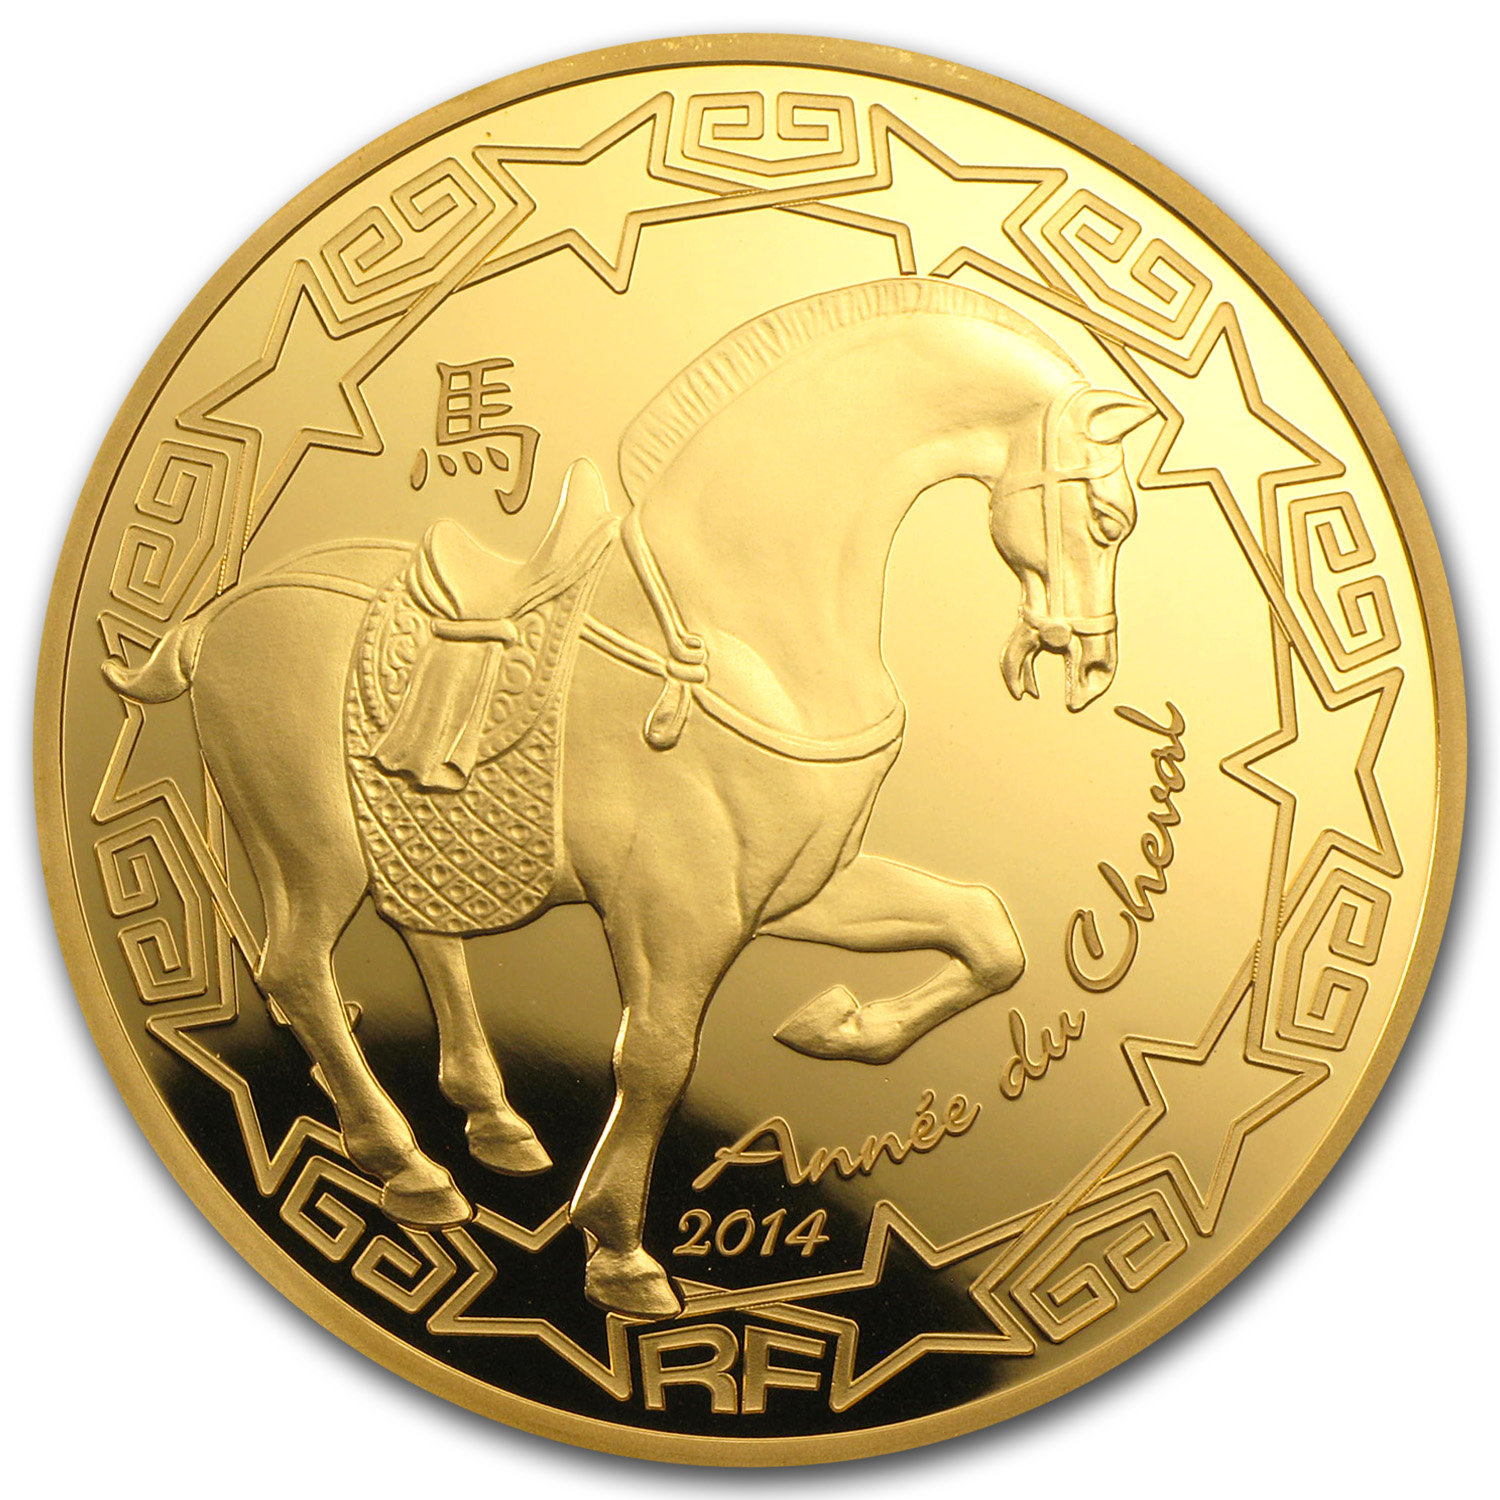 2014 1 oz Proof Gold €200 Year of the Horse Lunar Series